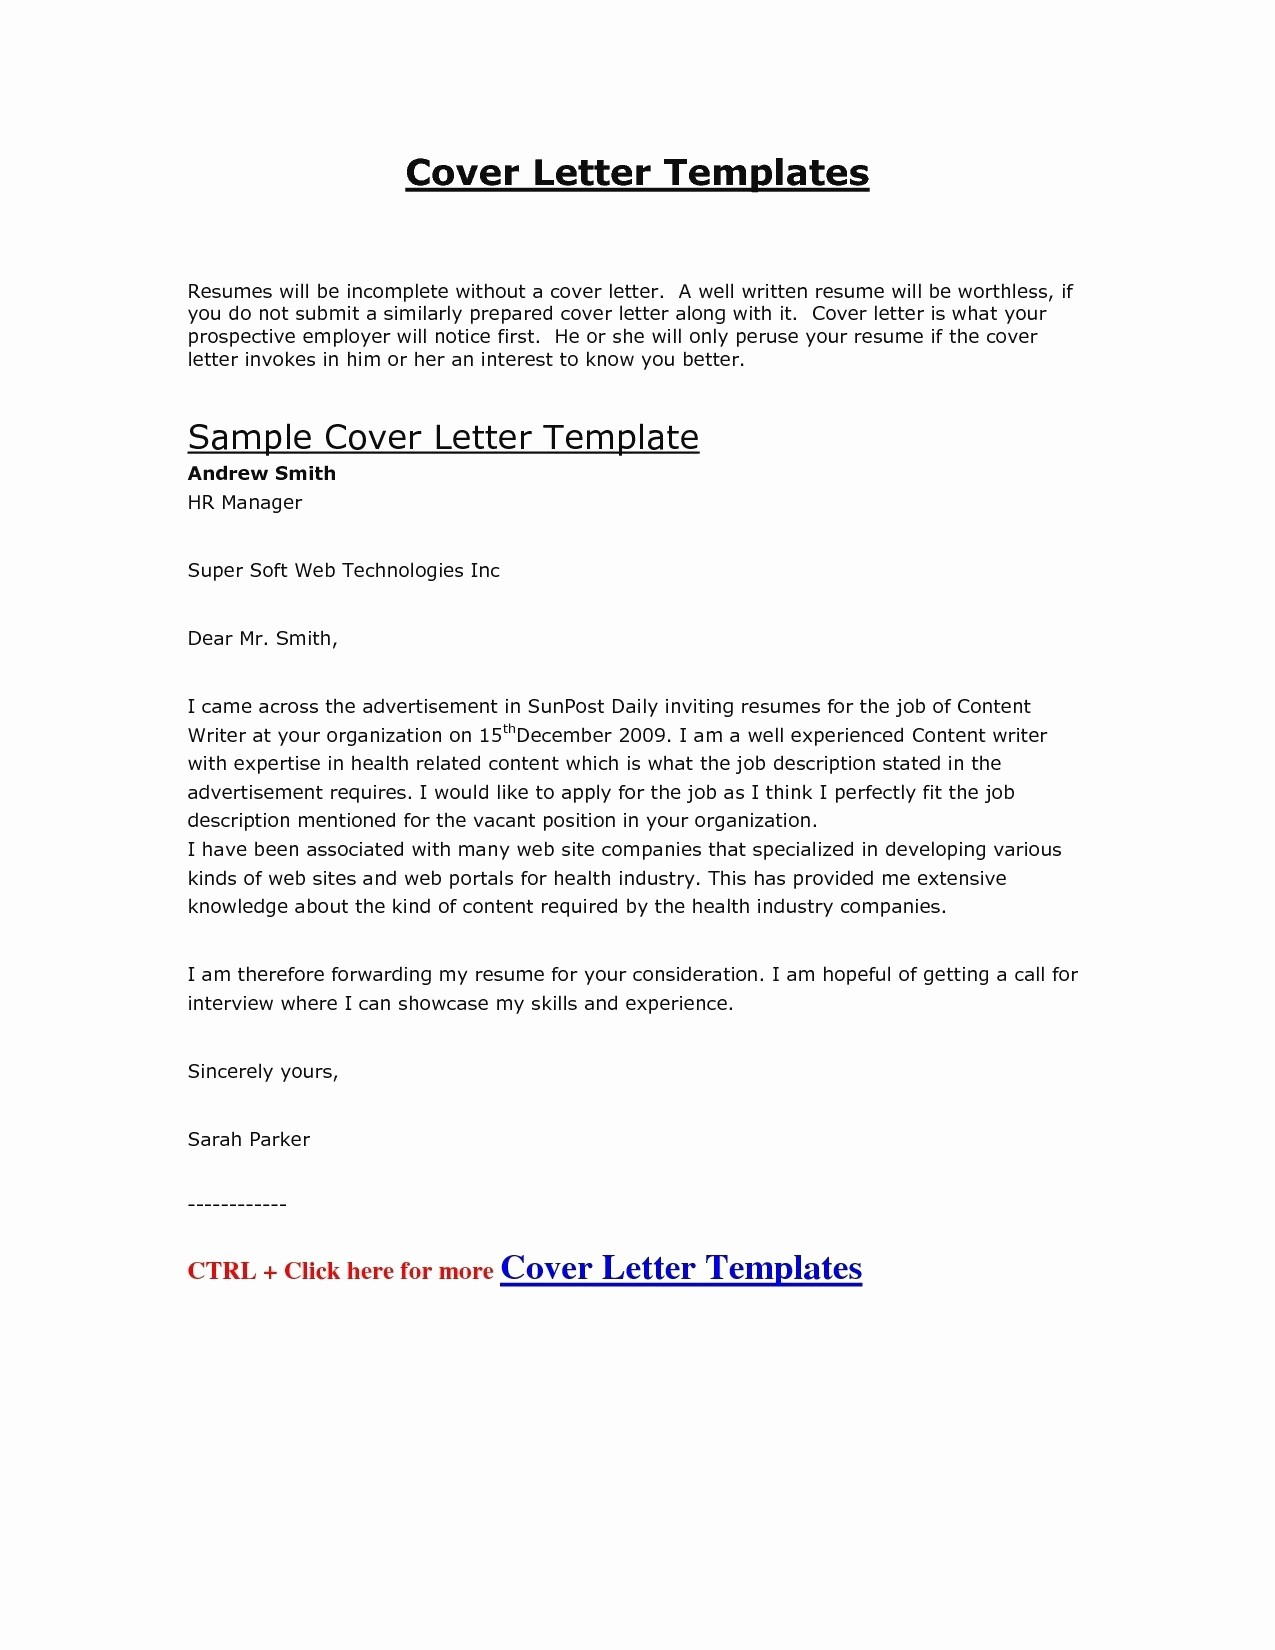 Cover Letter Template for Job Application - Job Application Letter format Template Copy Cover Letter Template Hr